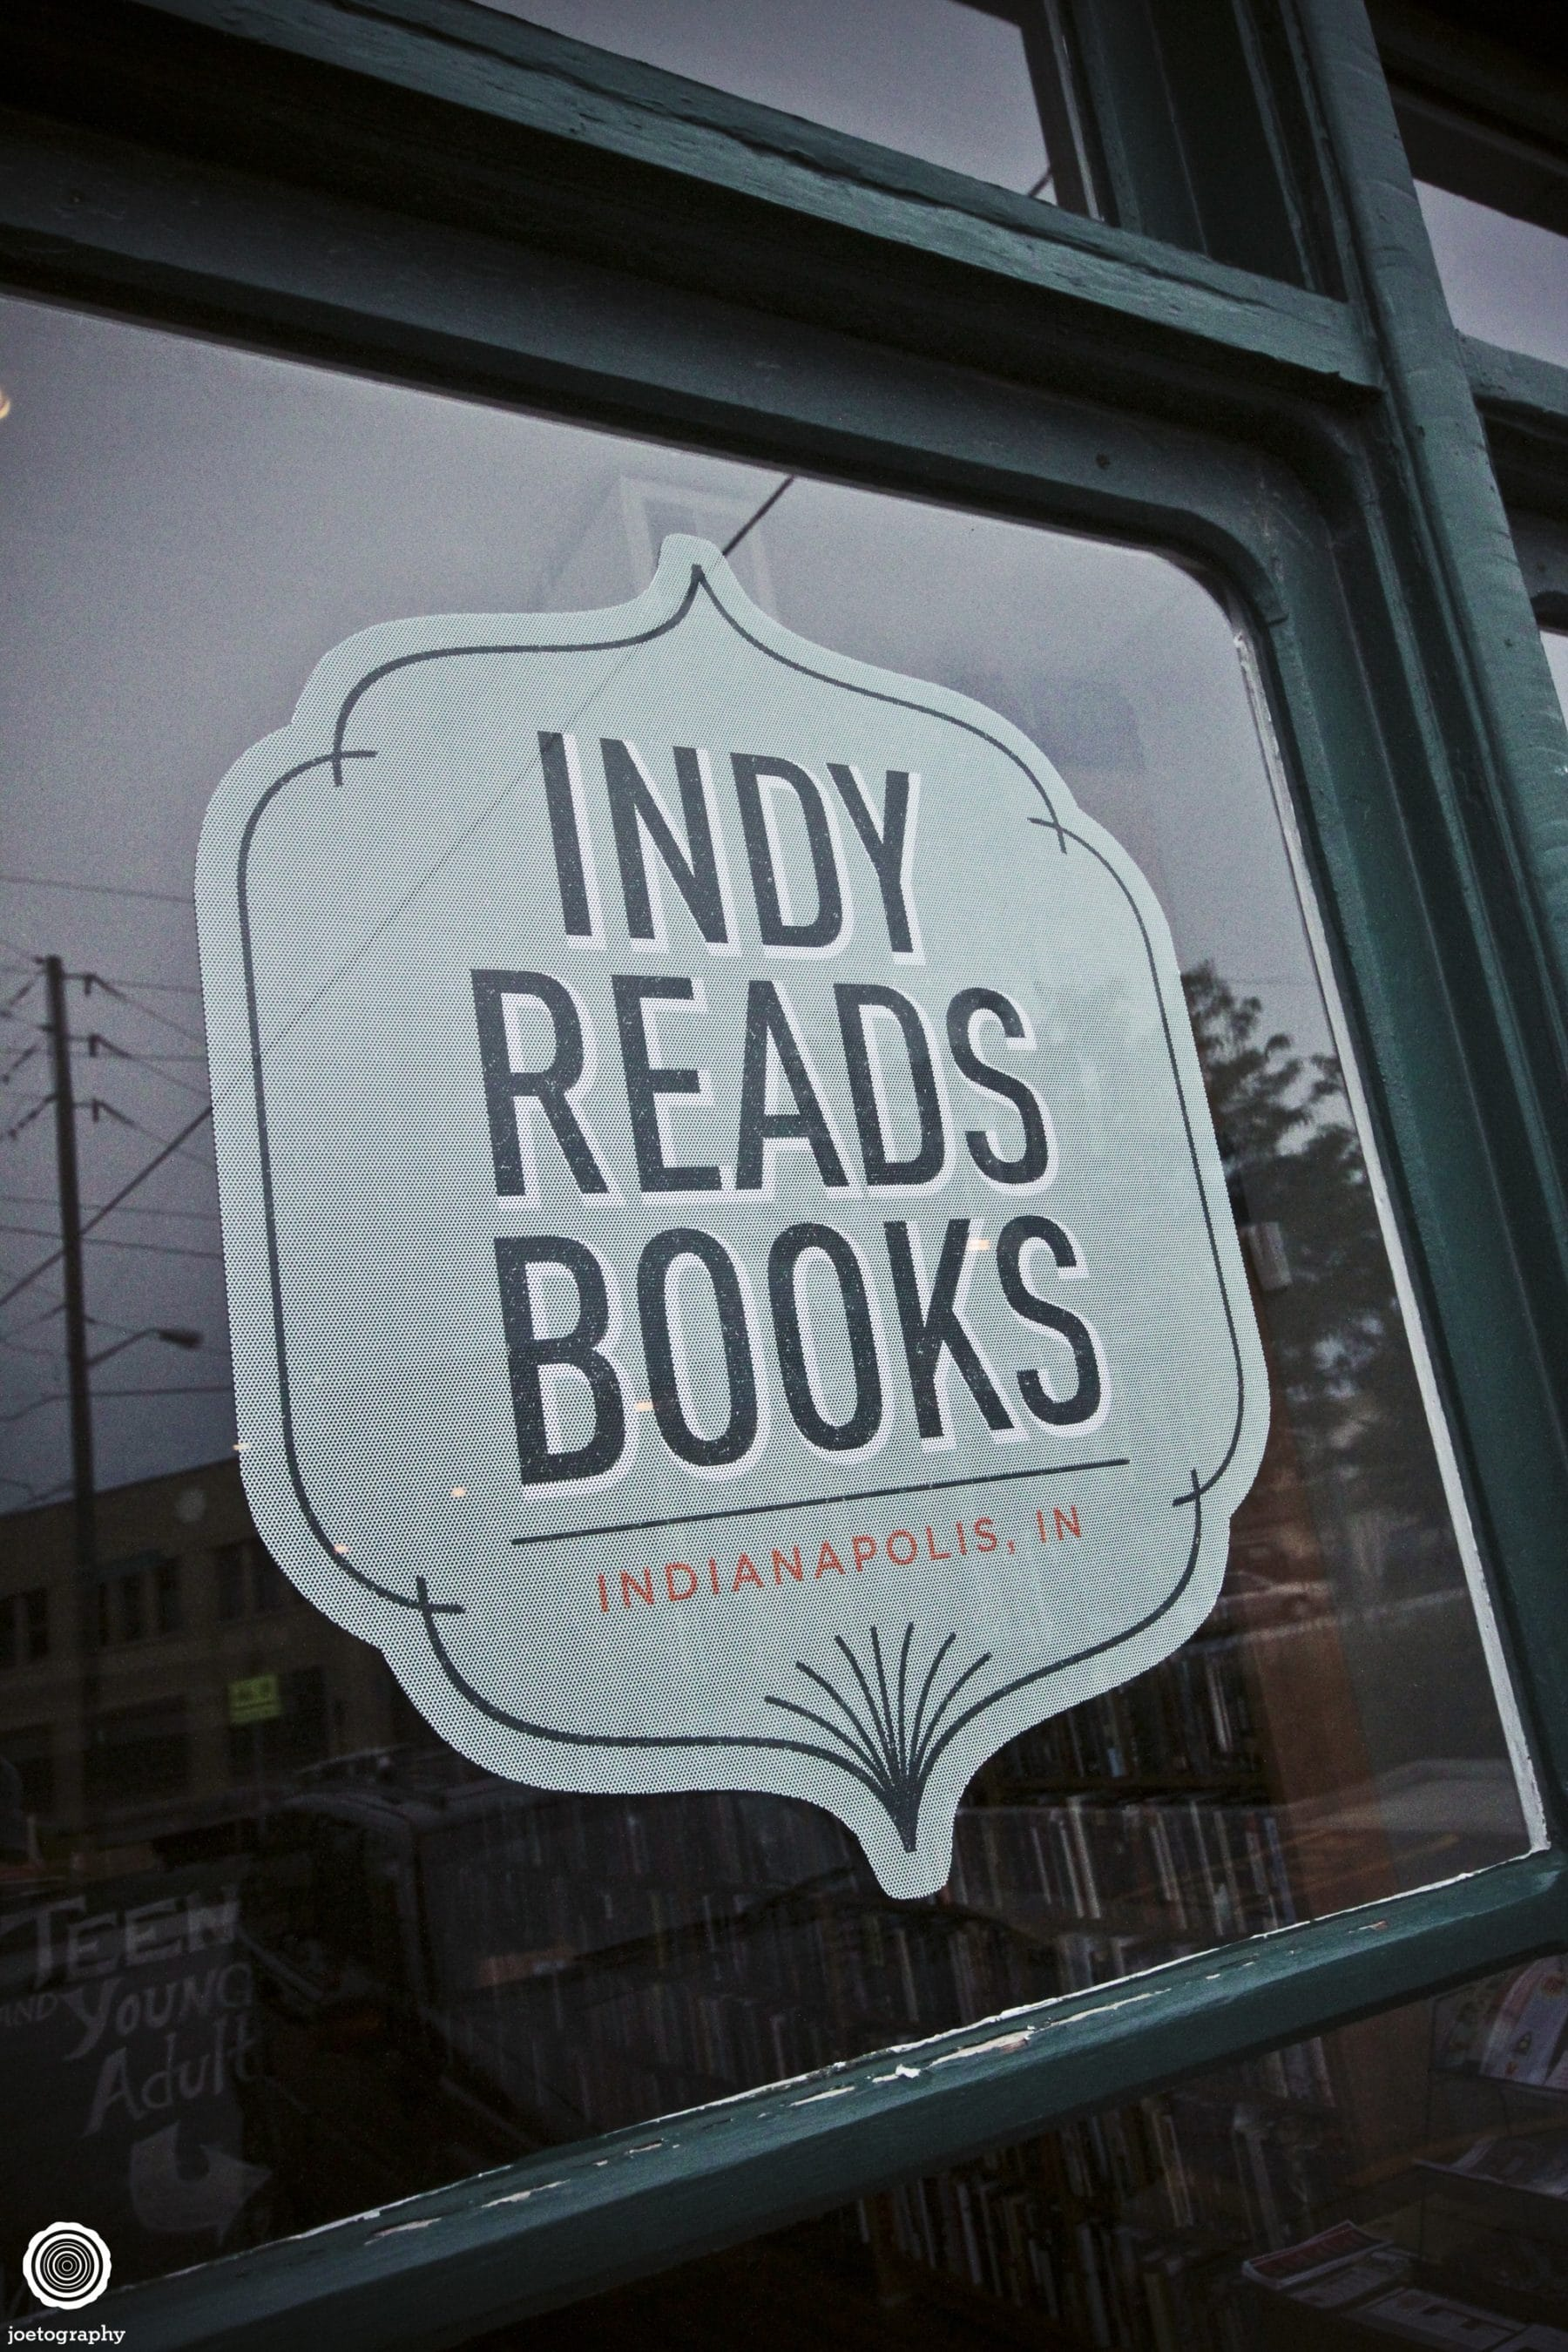 Indy-Reads-Books-Making-Indianapolis-Literate-Photos-10